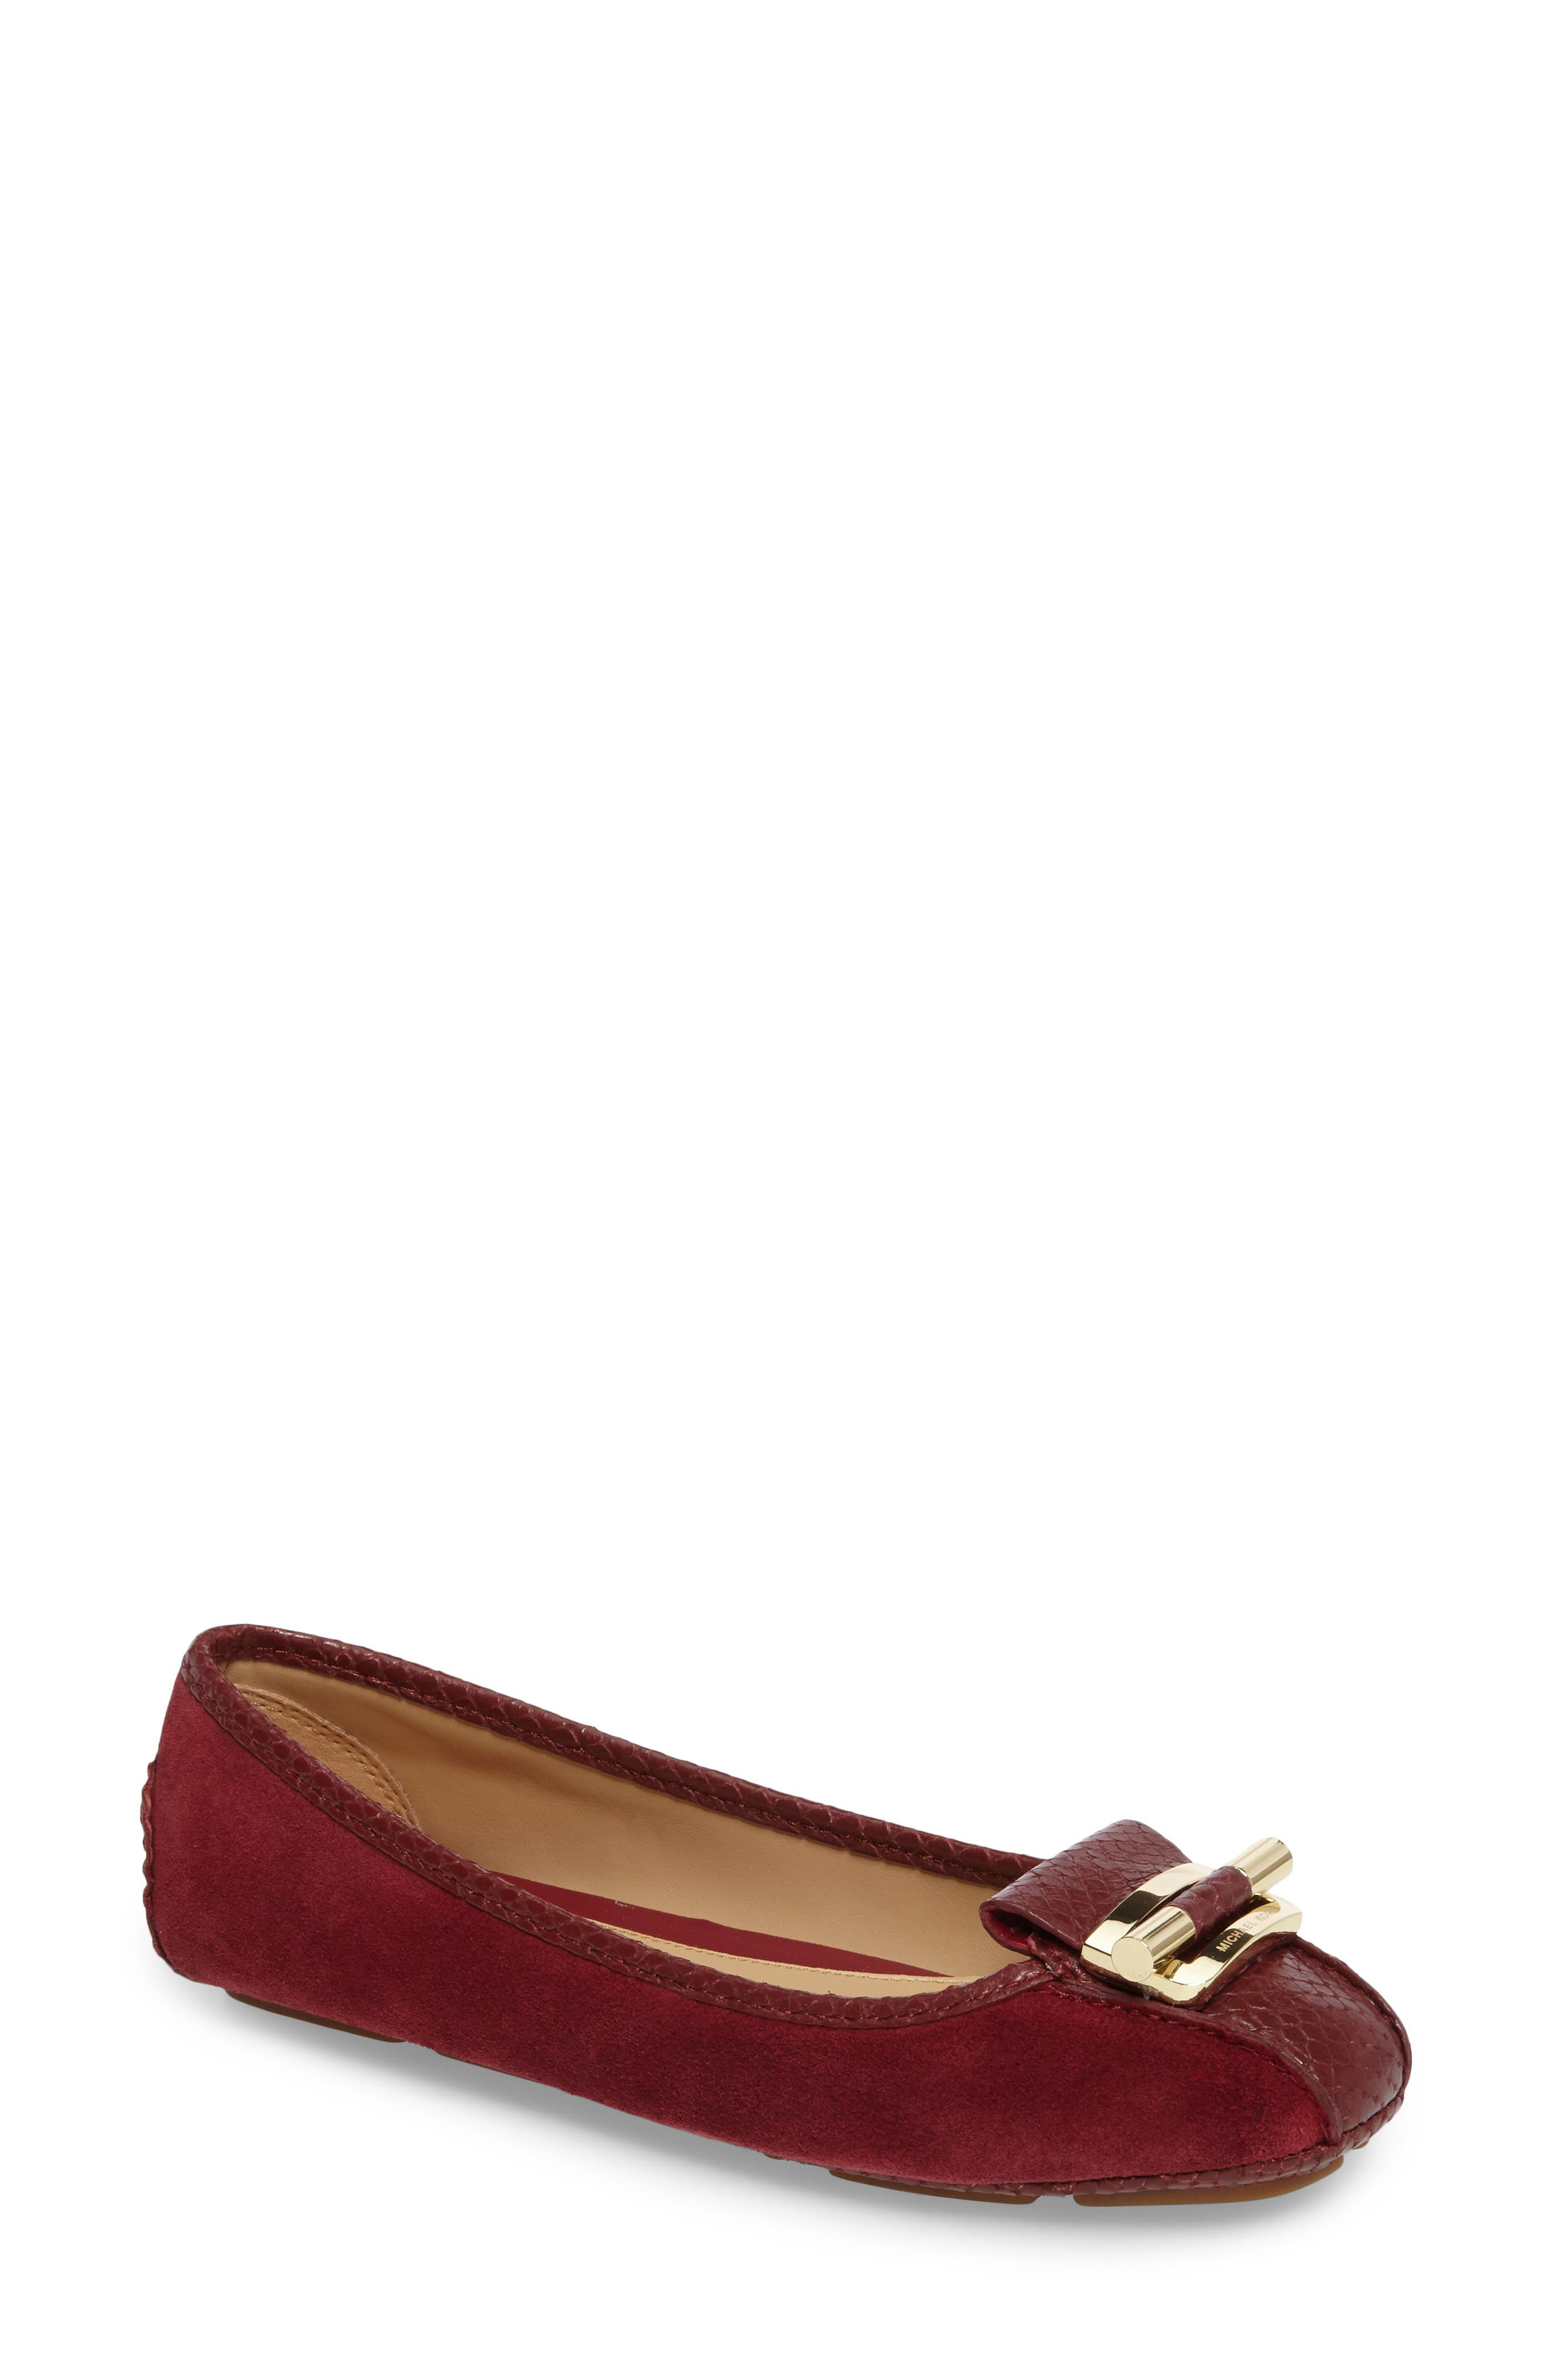 Gloria Flat,                         Main,                         color, Mulberry Snake Print Suede